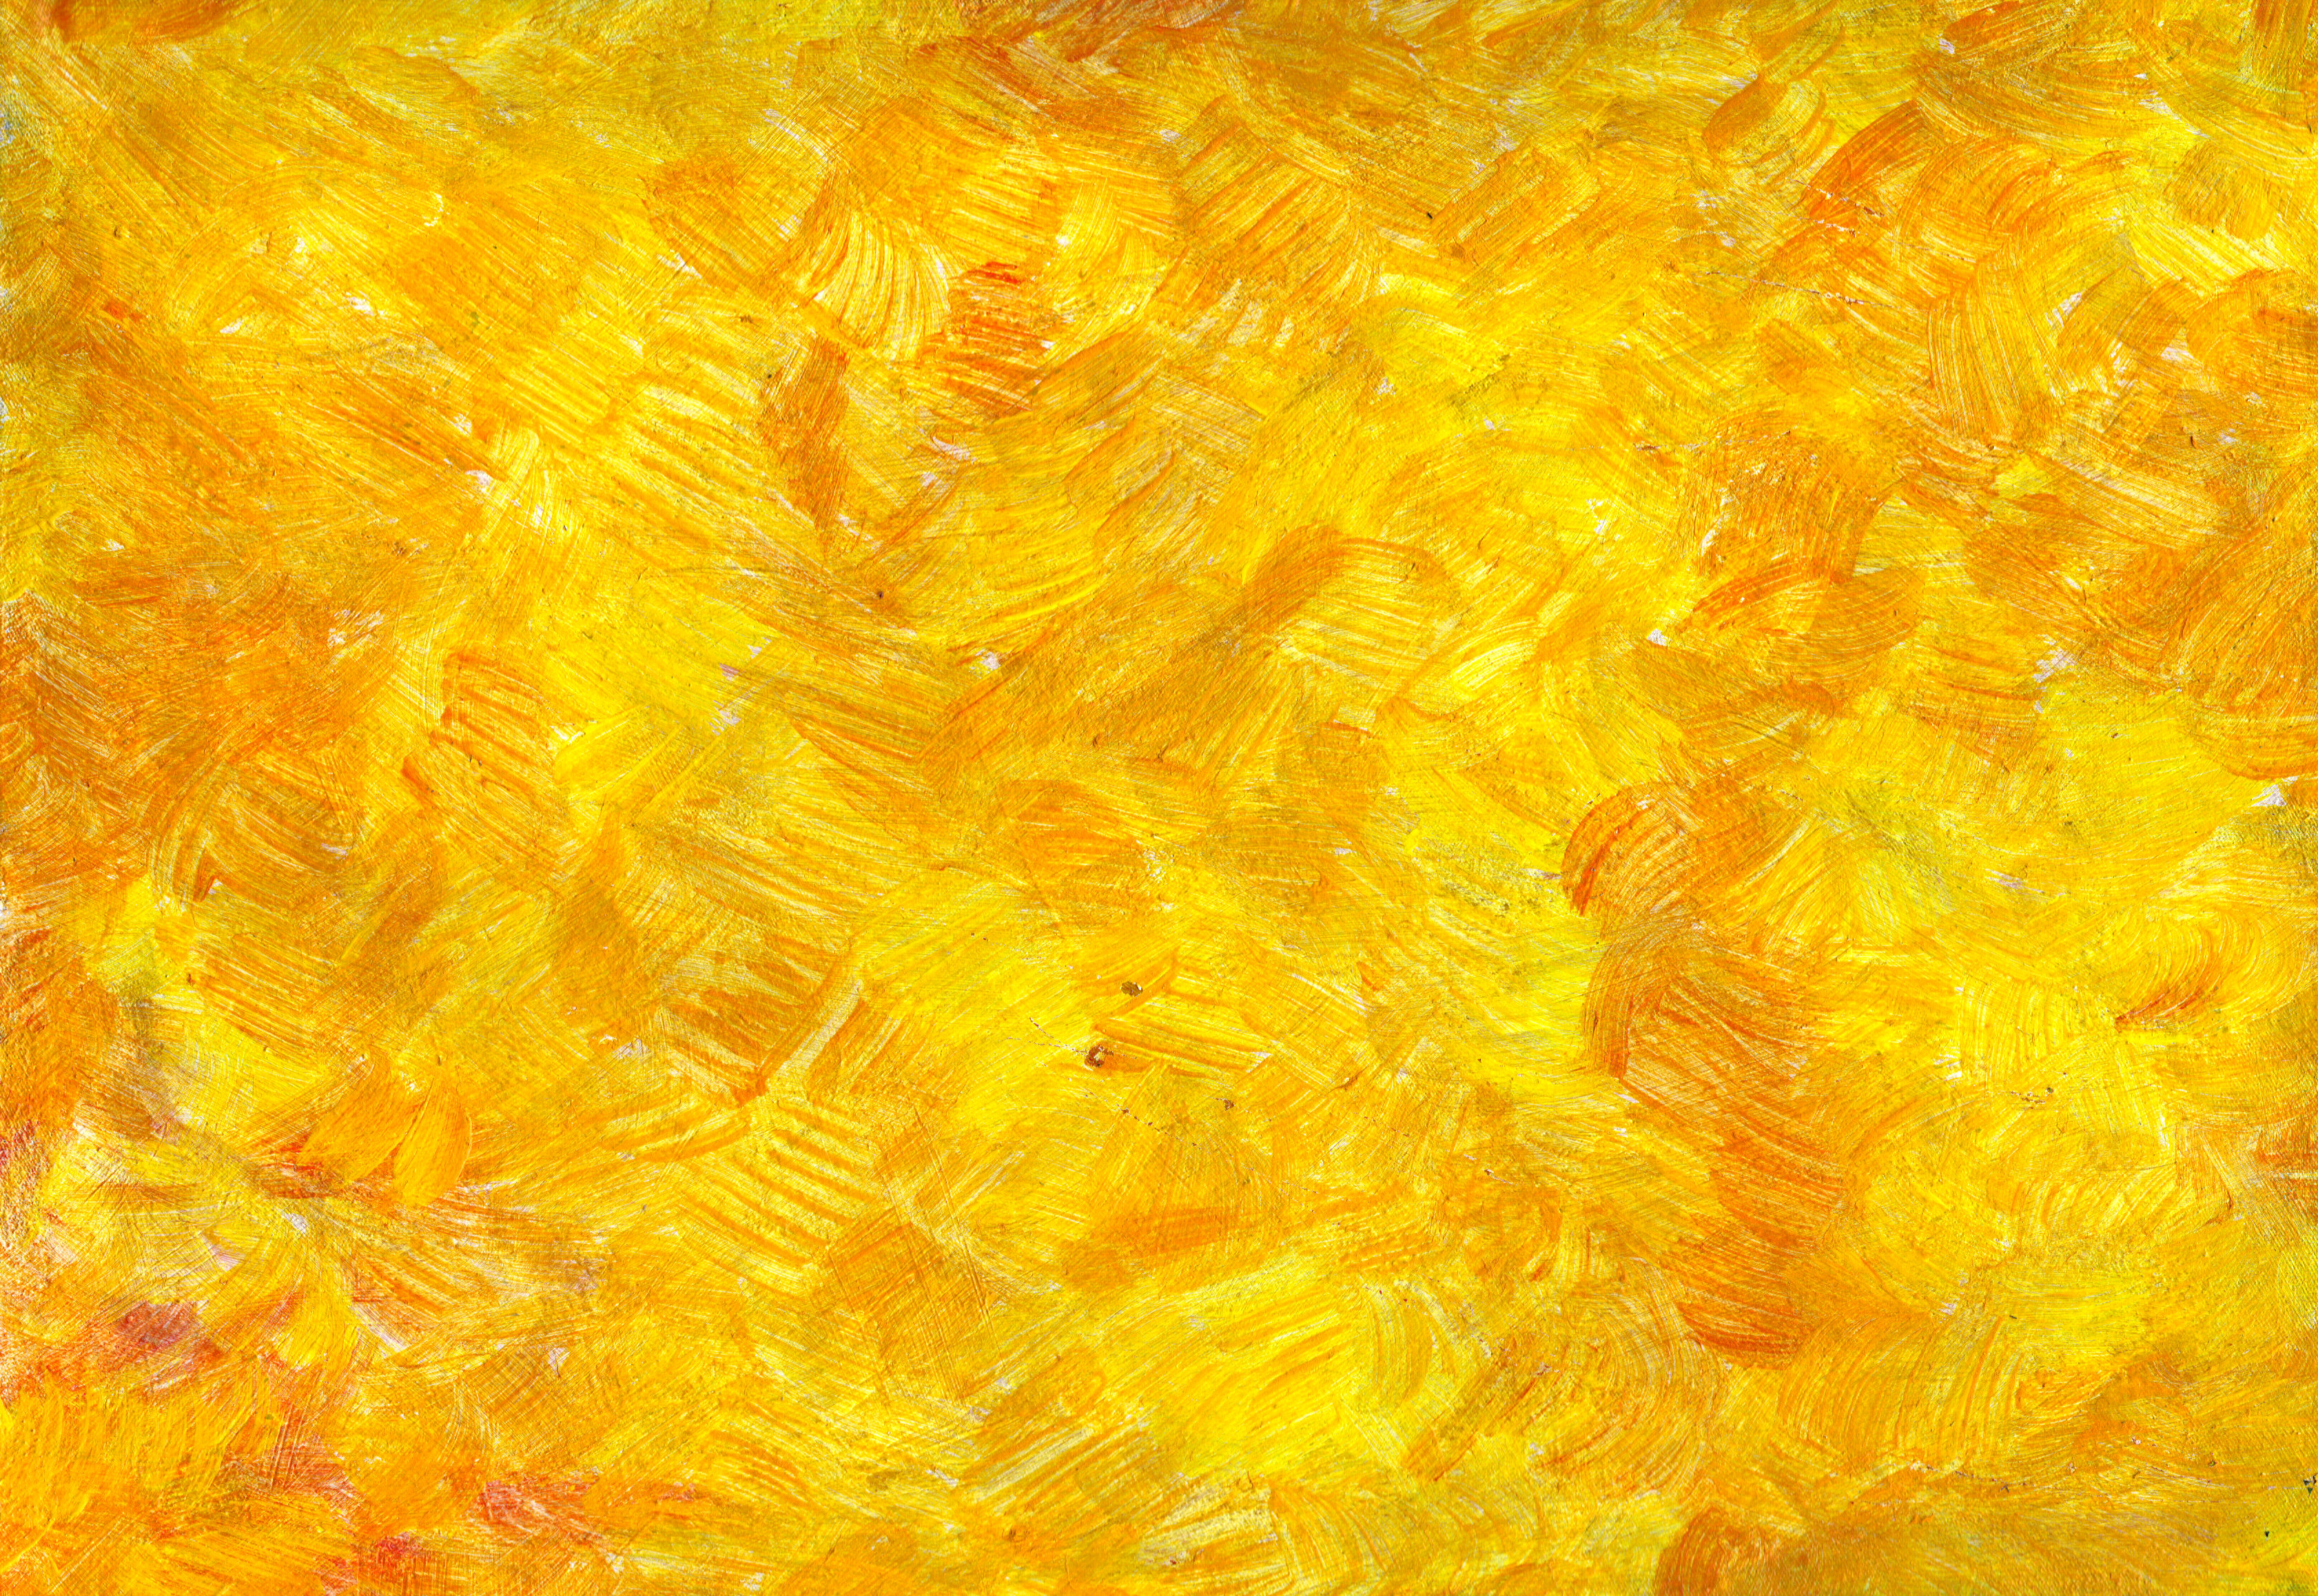 Yellow Orange Paint Texture JPG OnlyGFXcom